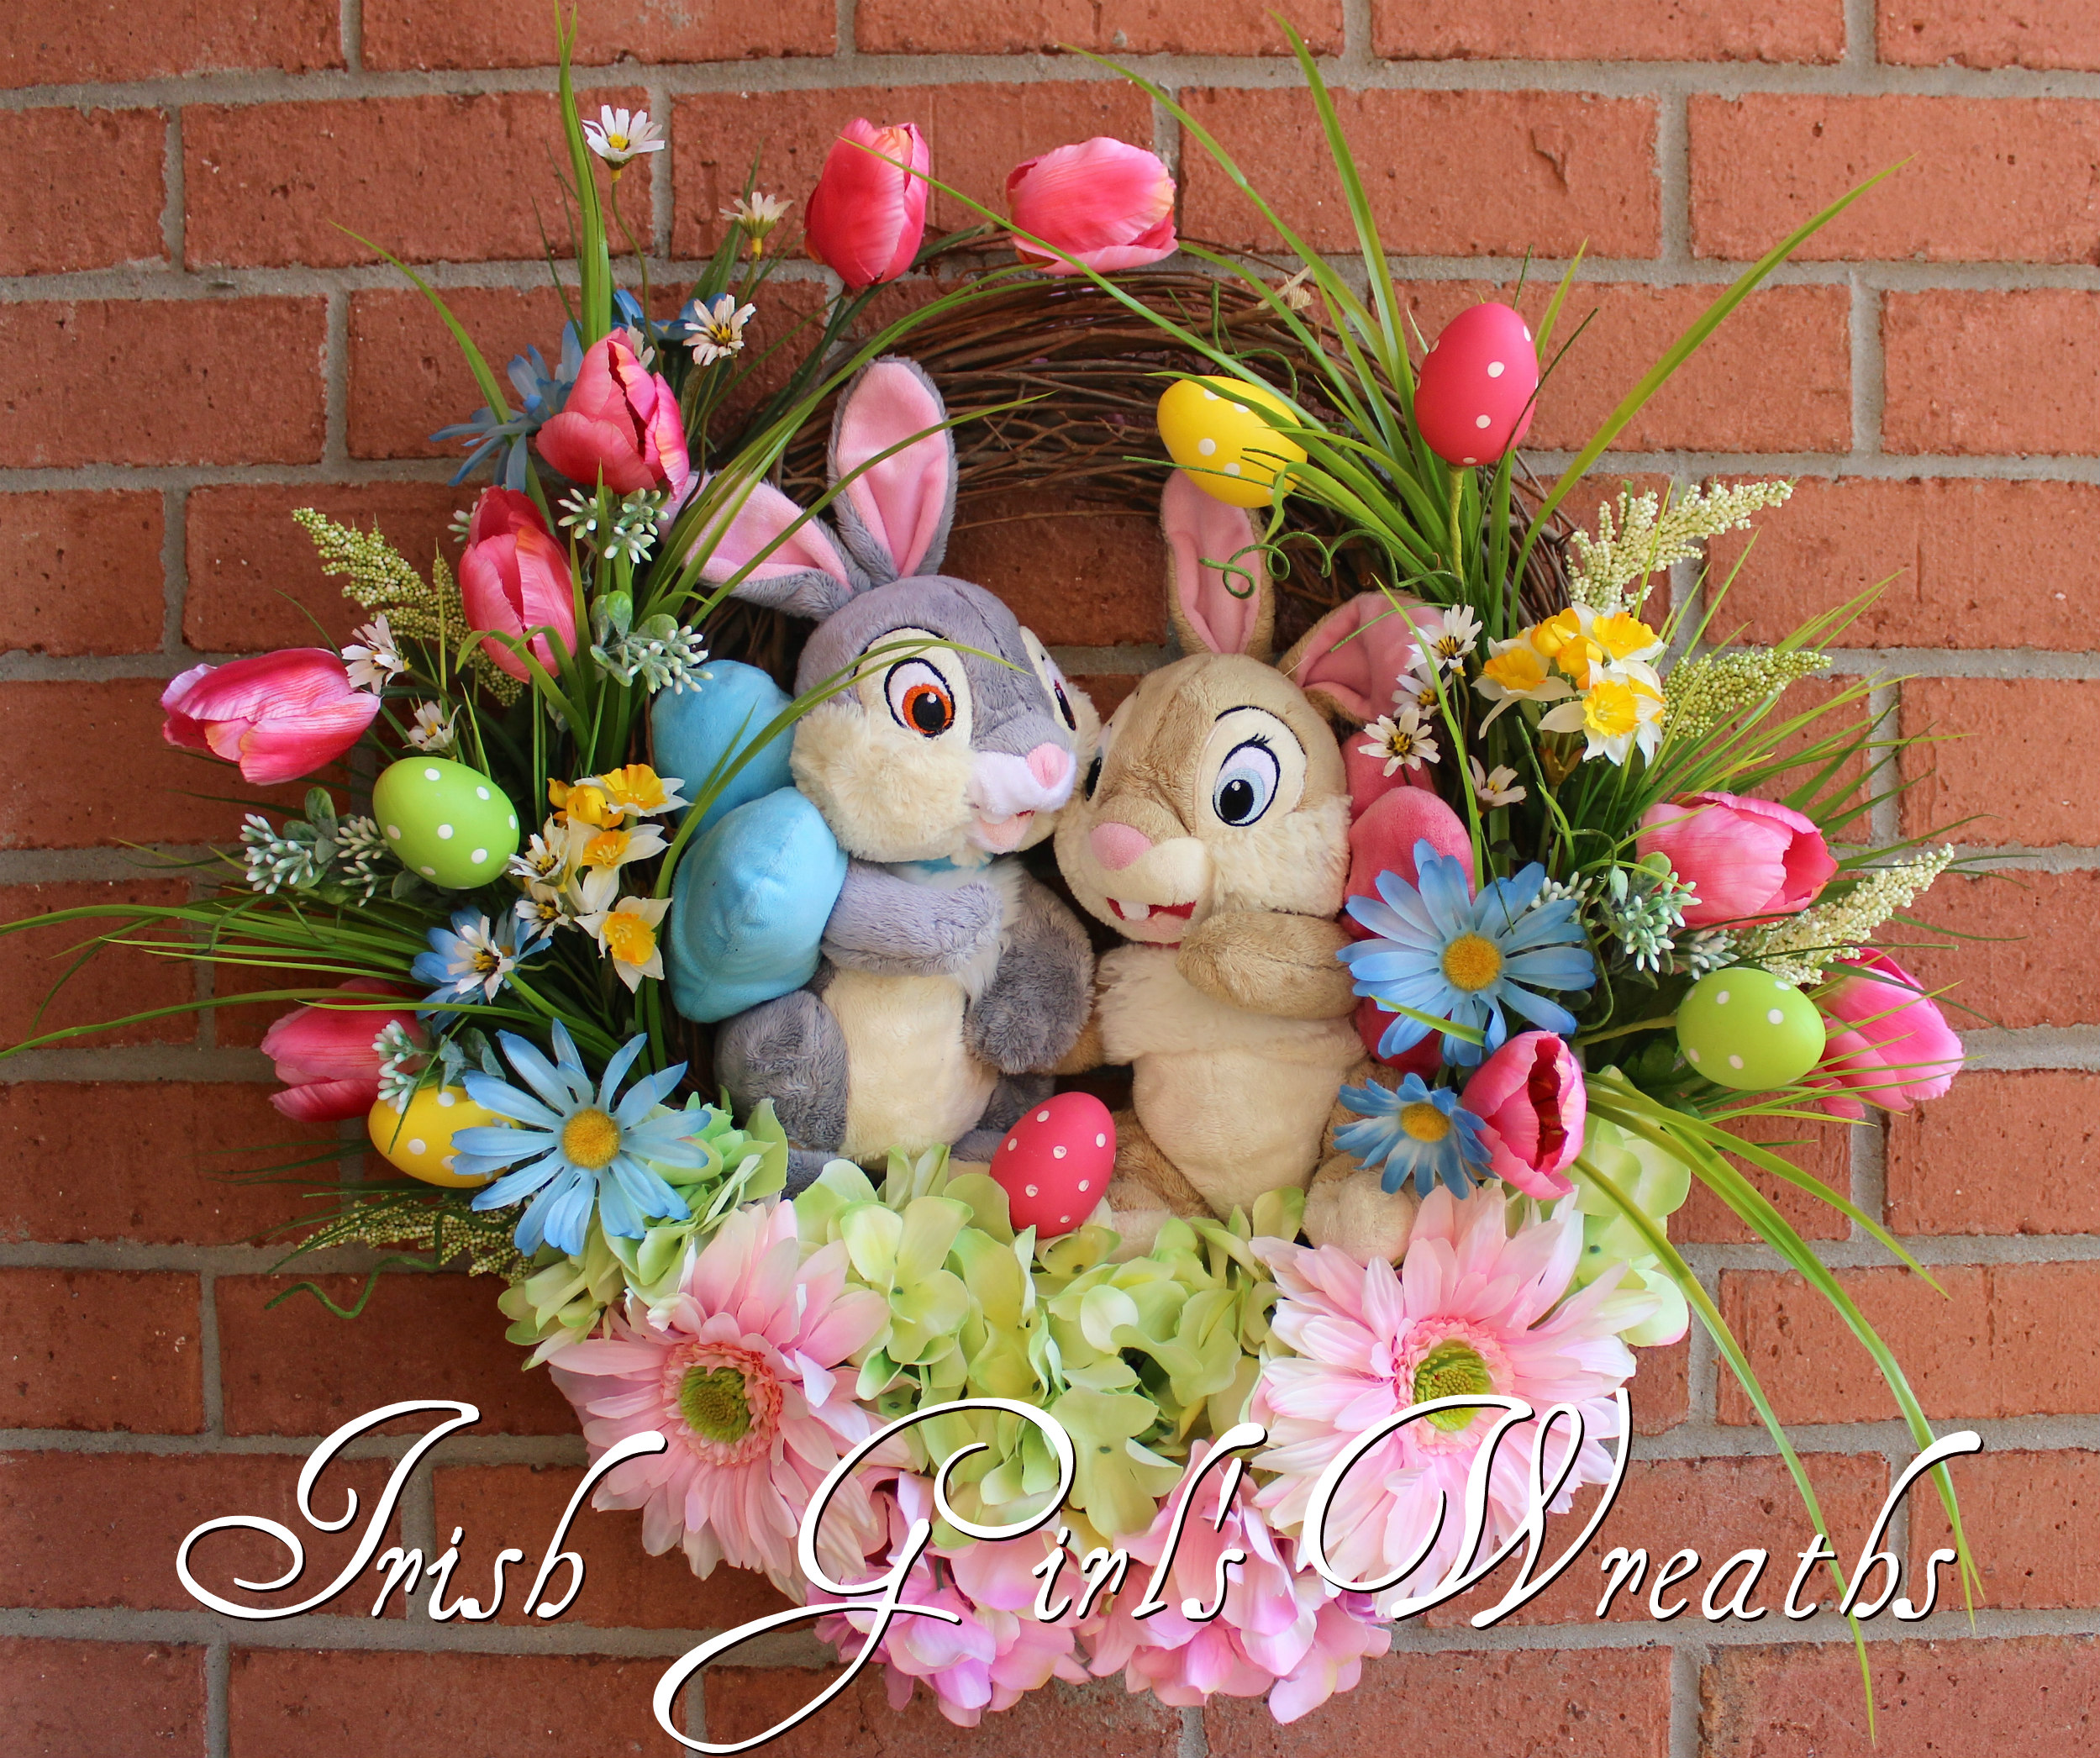 Thumper Easter Wreath, Thumper & Girlfriend Tulip Garden Wreath